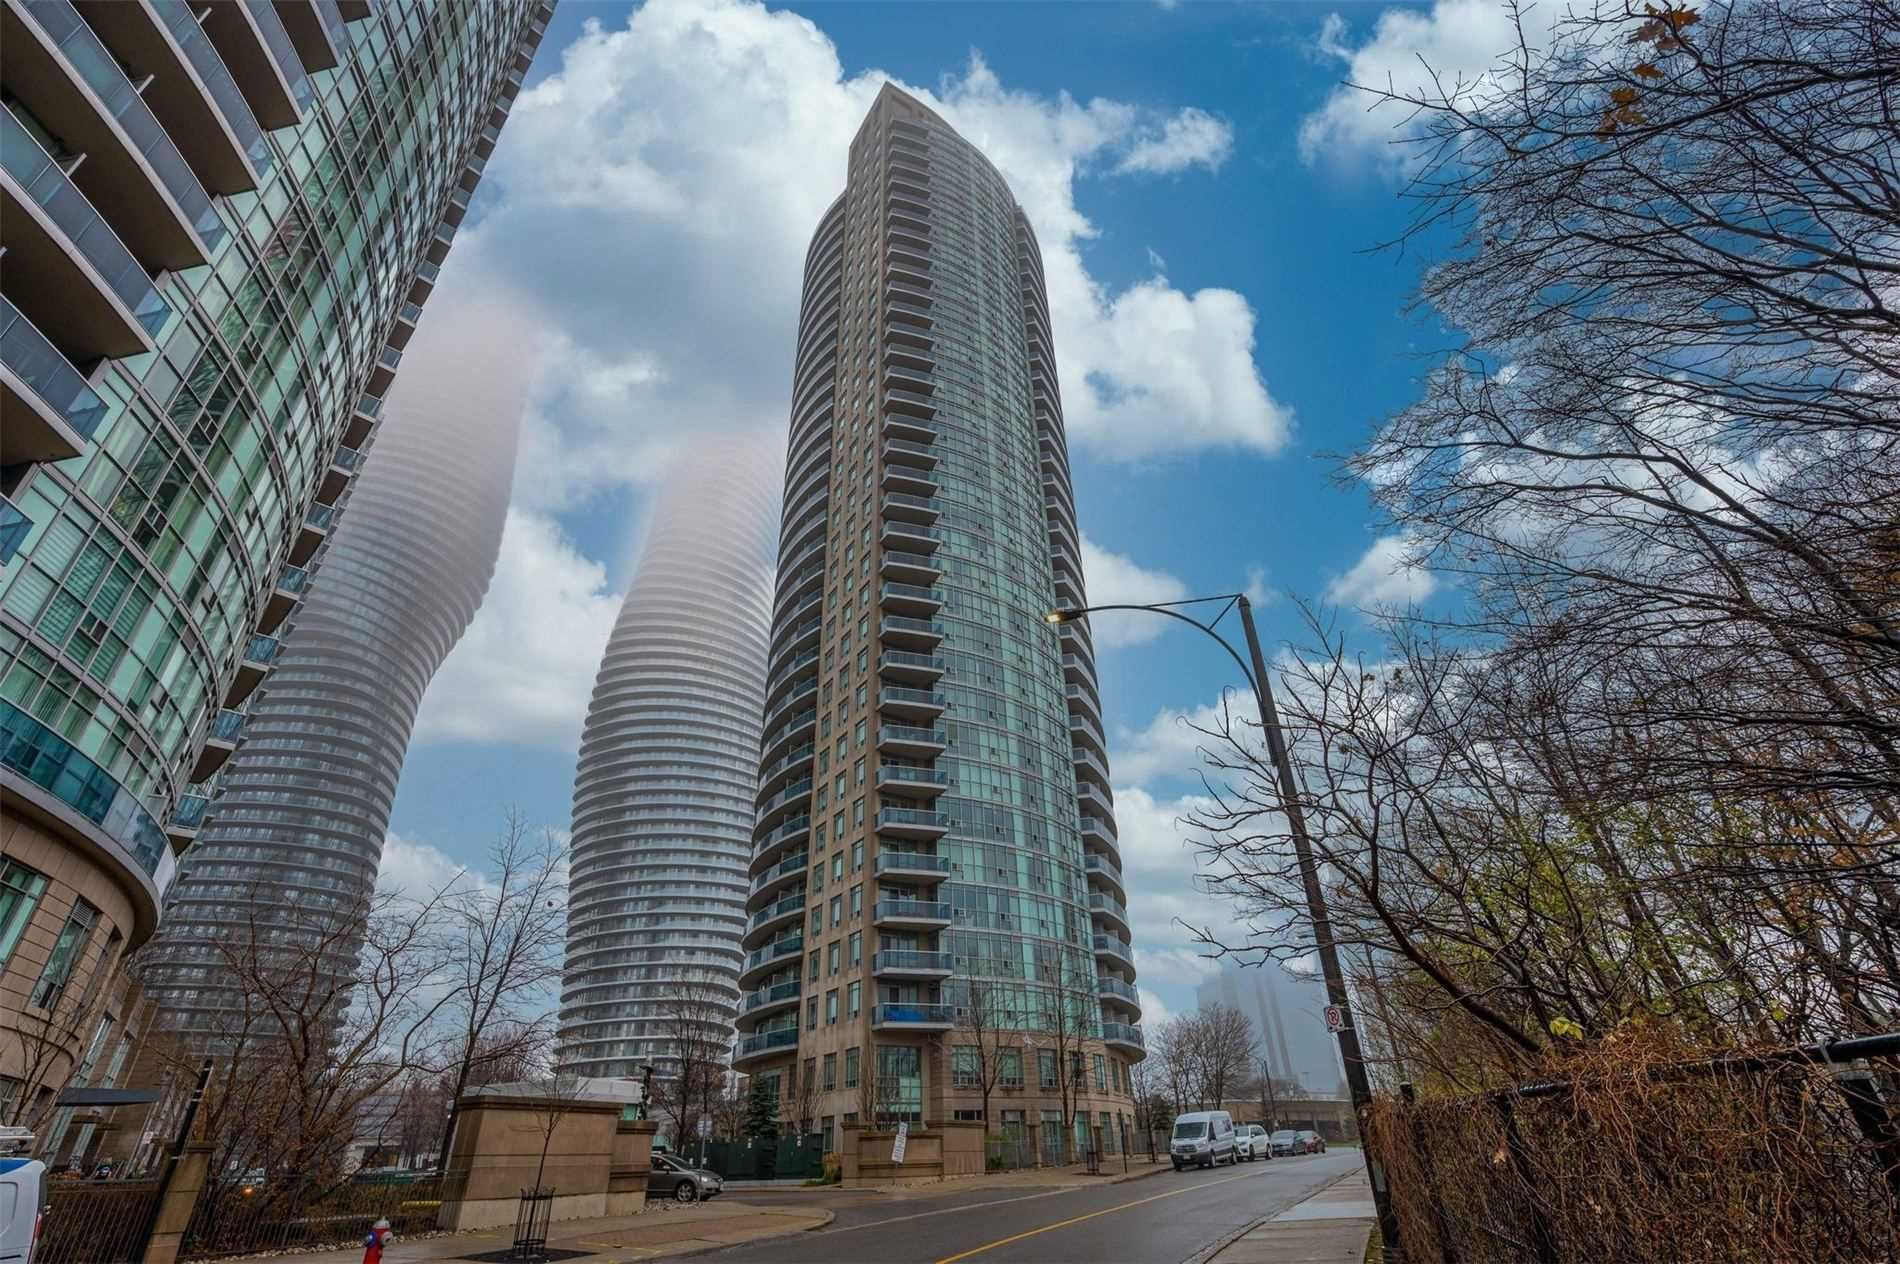 Main Photo: 80 Absolute Ave Unit #2708 in Mississauga: City Centre Condo for sale : MLS®# W5001691